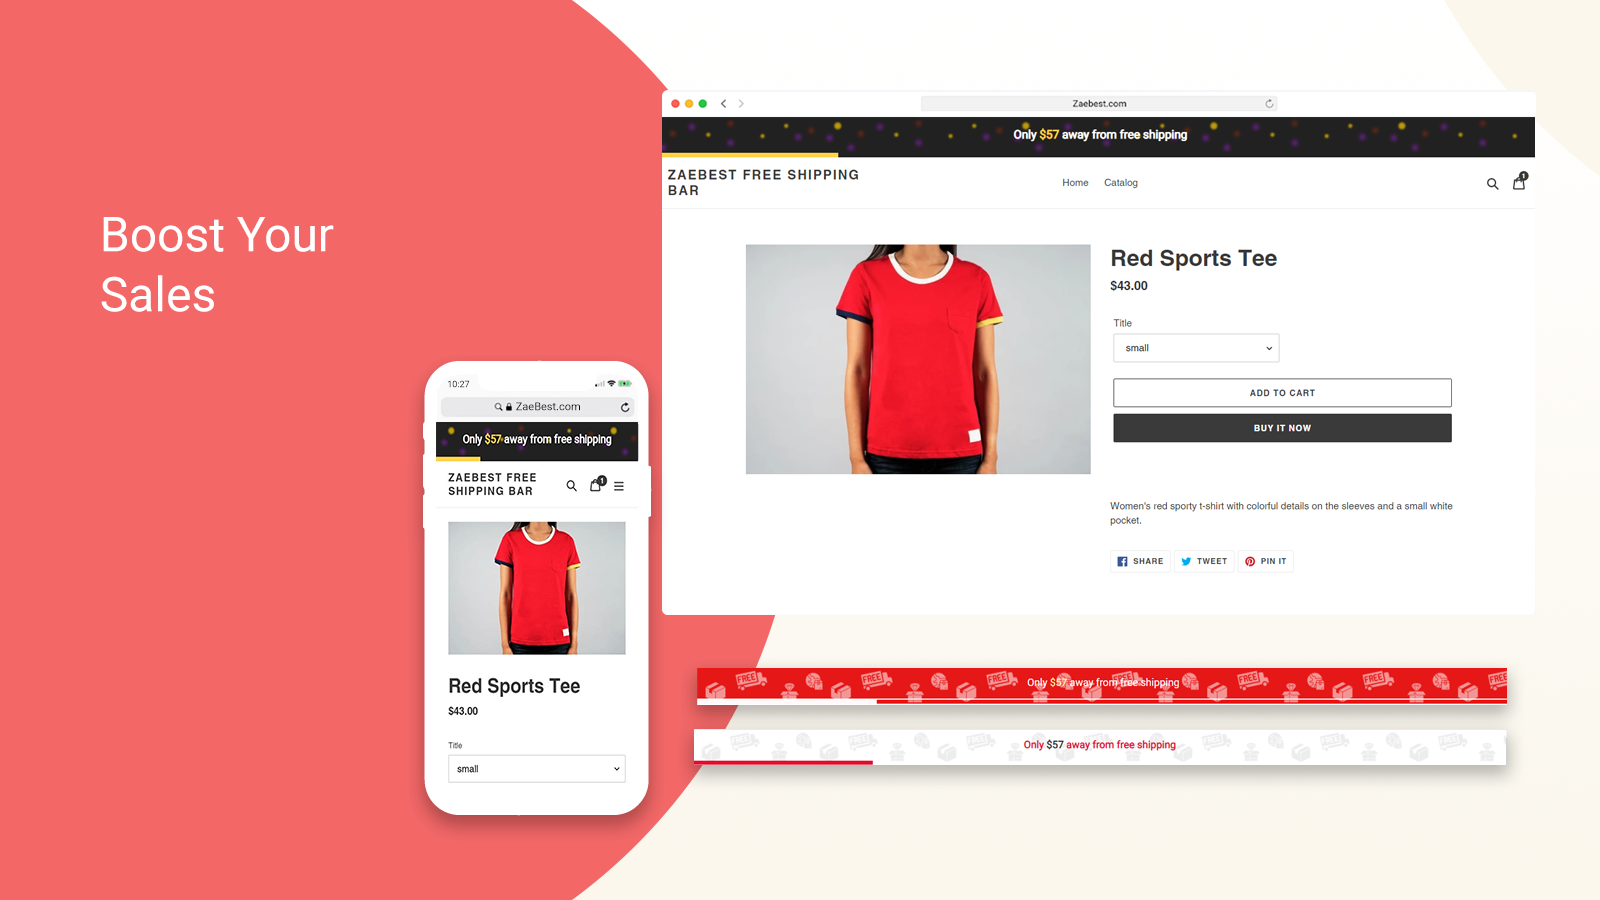 Increase your sales with Free Shipping Bar